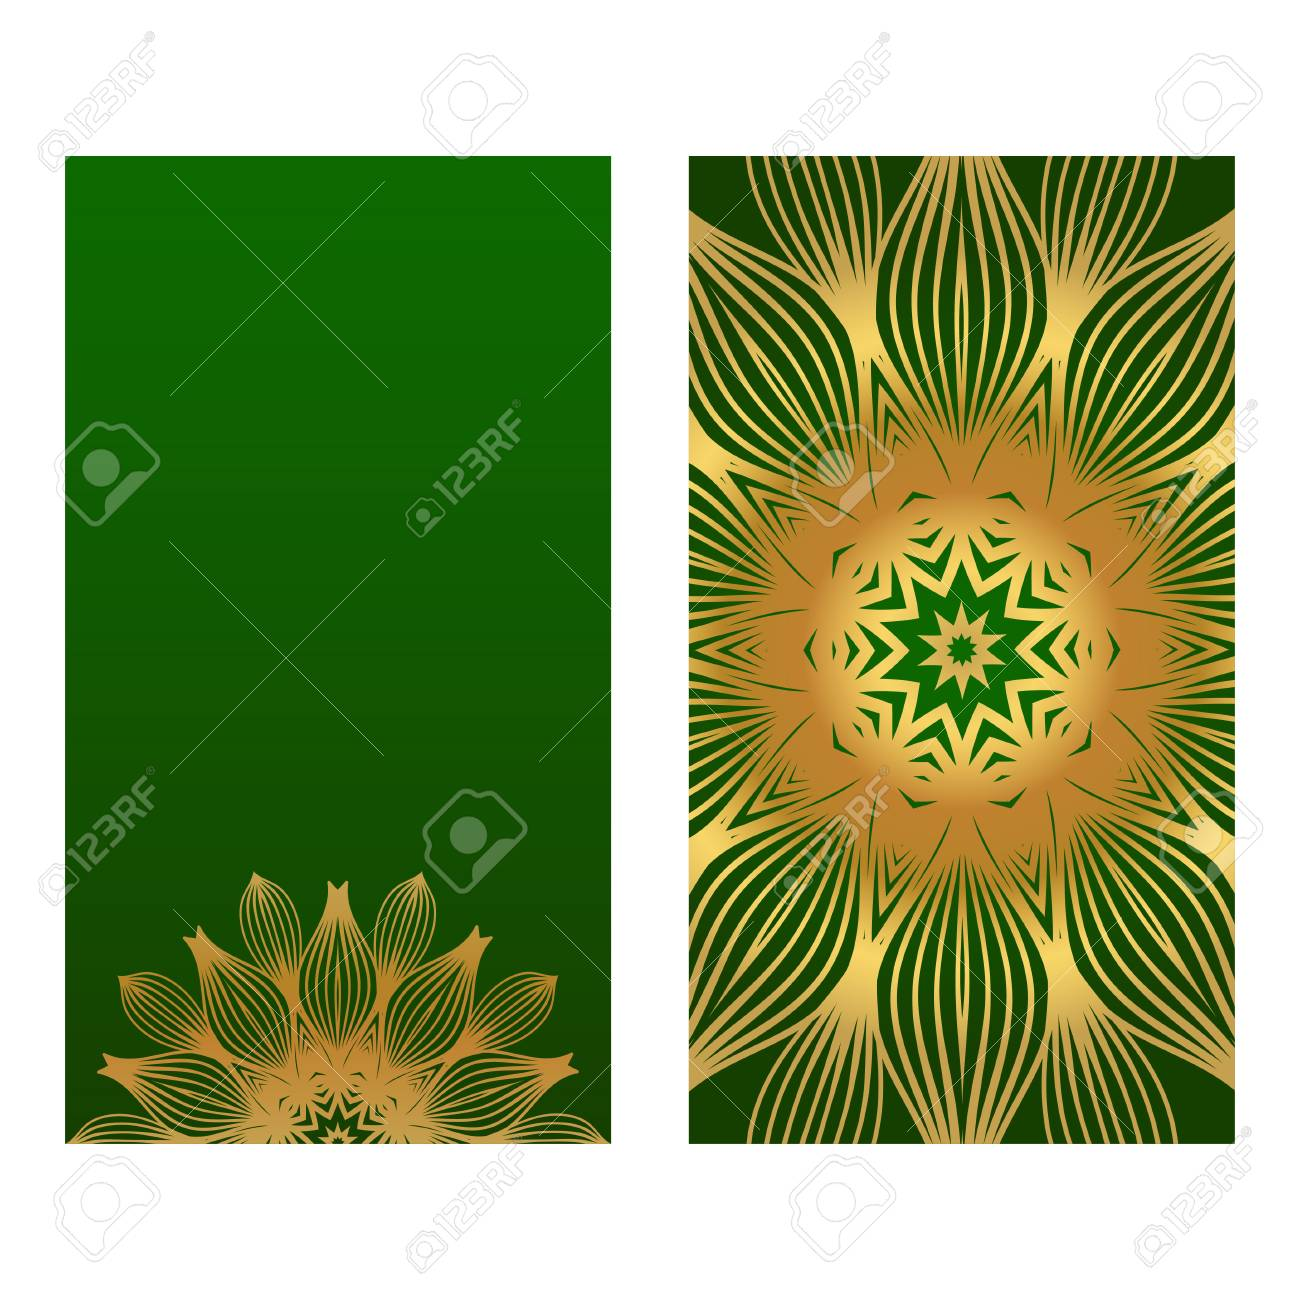 Invitation Or Card Template With Floral Mandala Pattern For